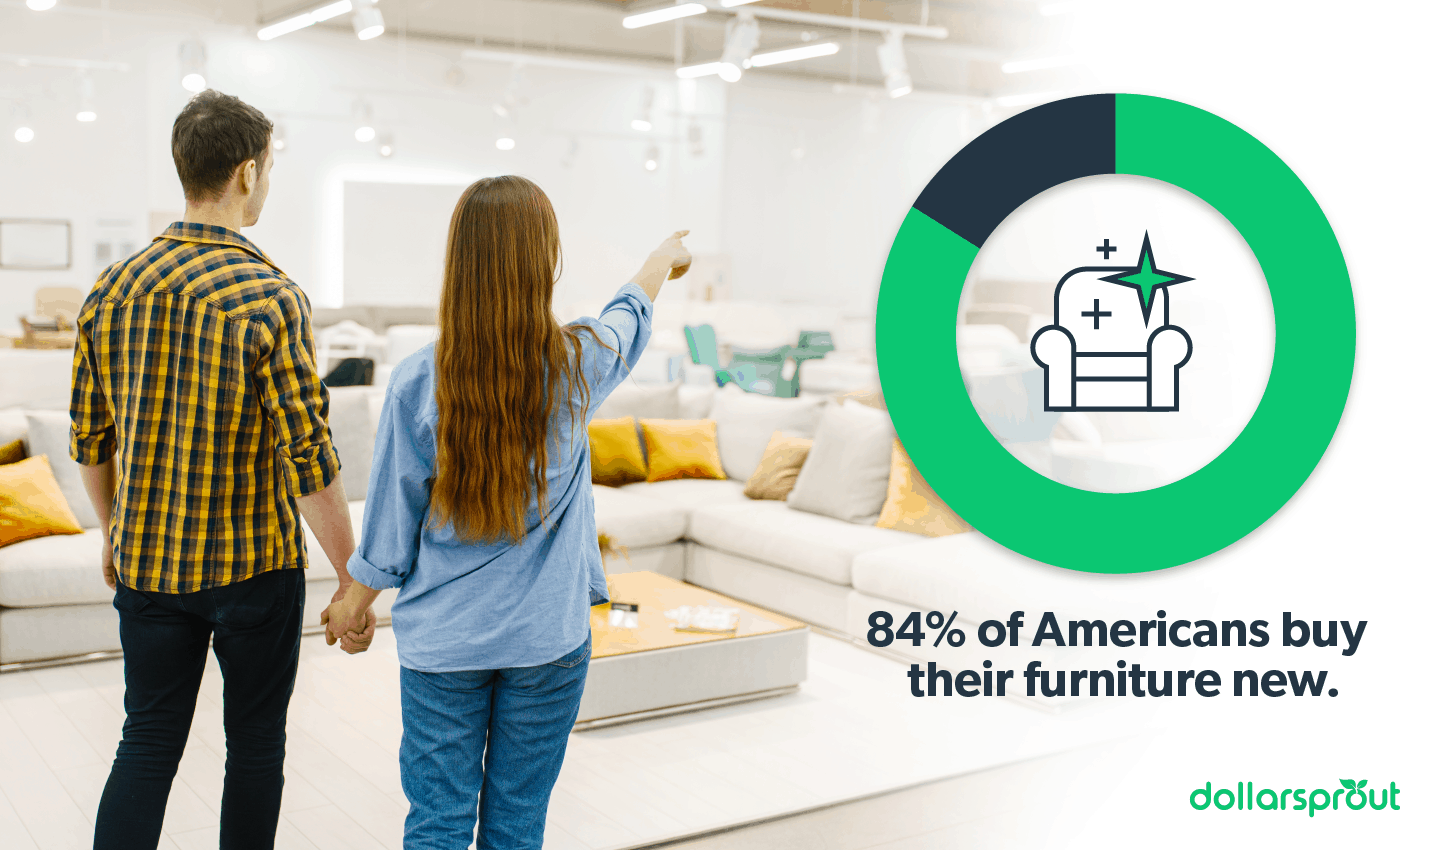 Percent of Americans who buy their furniture new